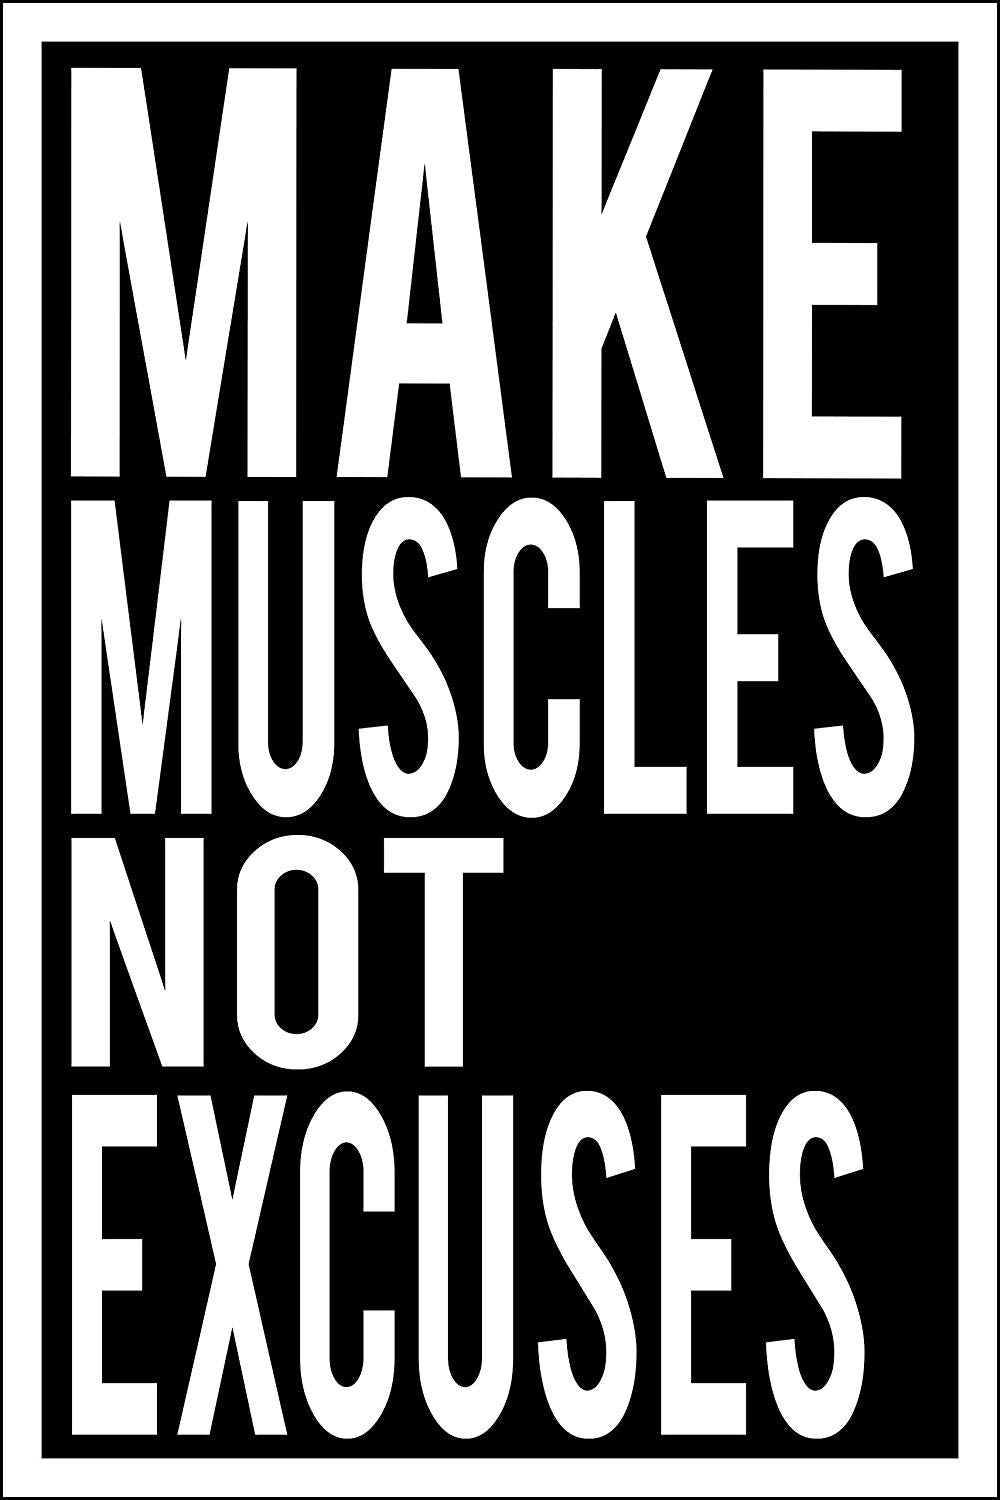 "Spitzy's Make Muscles Not Excuses - Motivational Workout Poster (12"" x 18"" Dimensions Include a .5"" White Border)"